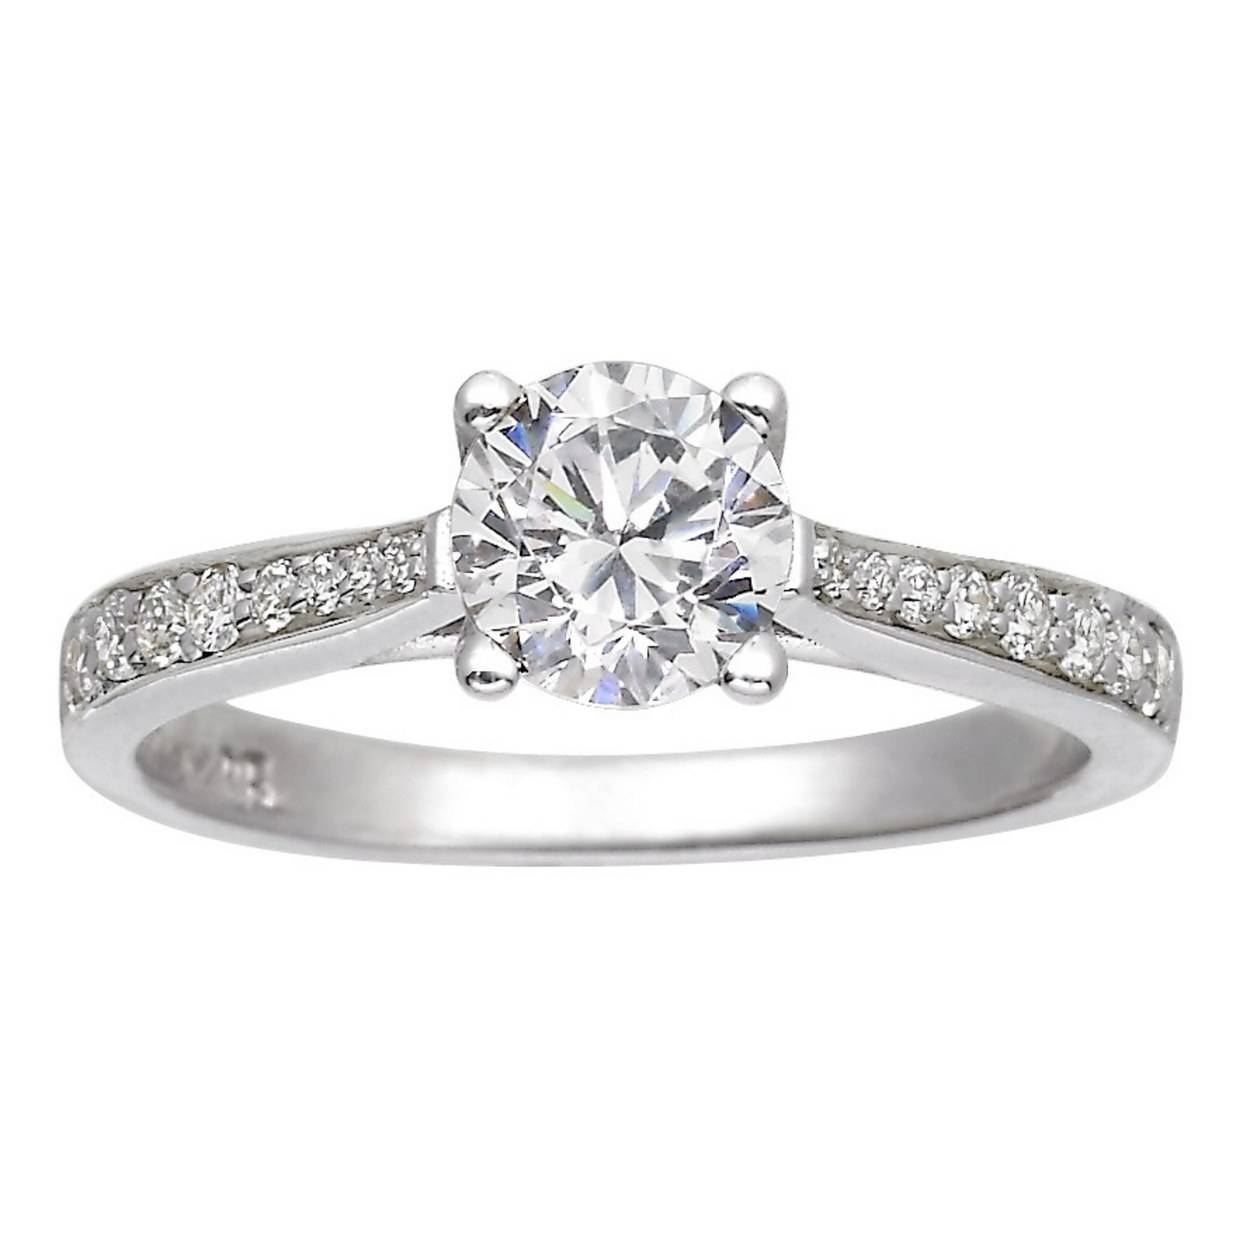 62 Diamond Engagement Rings Under $5,000 | Glamour For Real Diamond Wedding Rings (View 4 of 15)